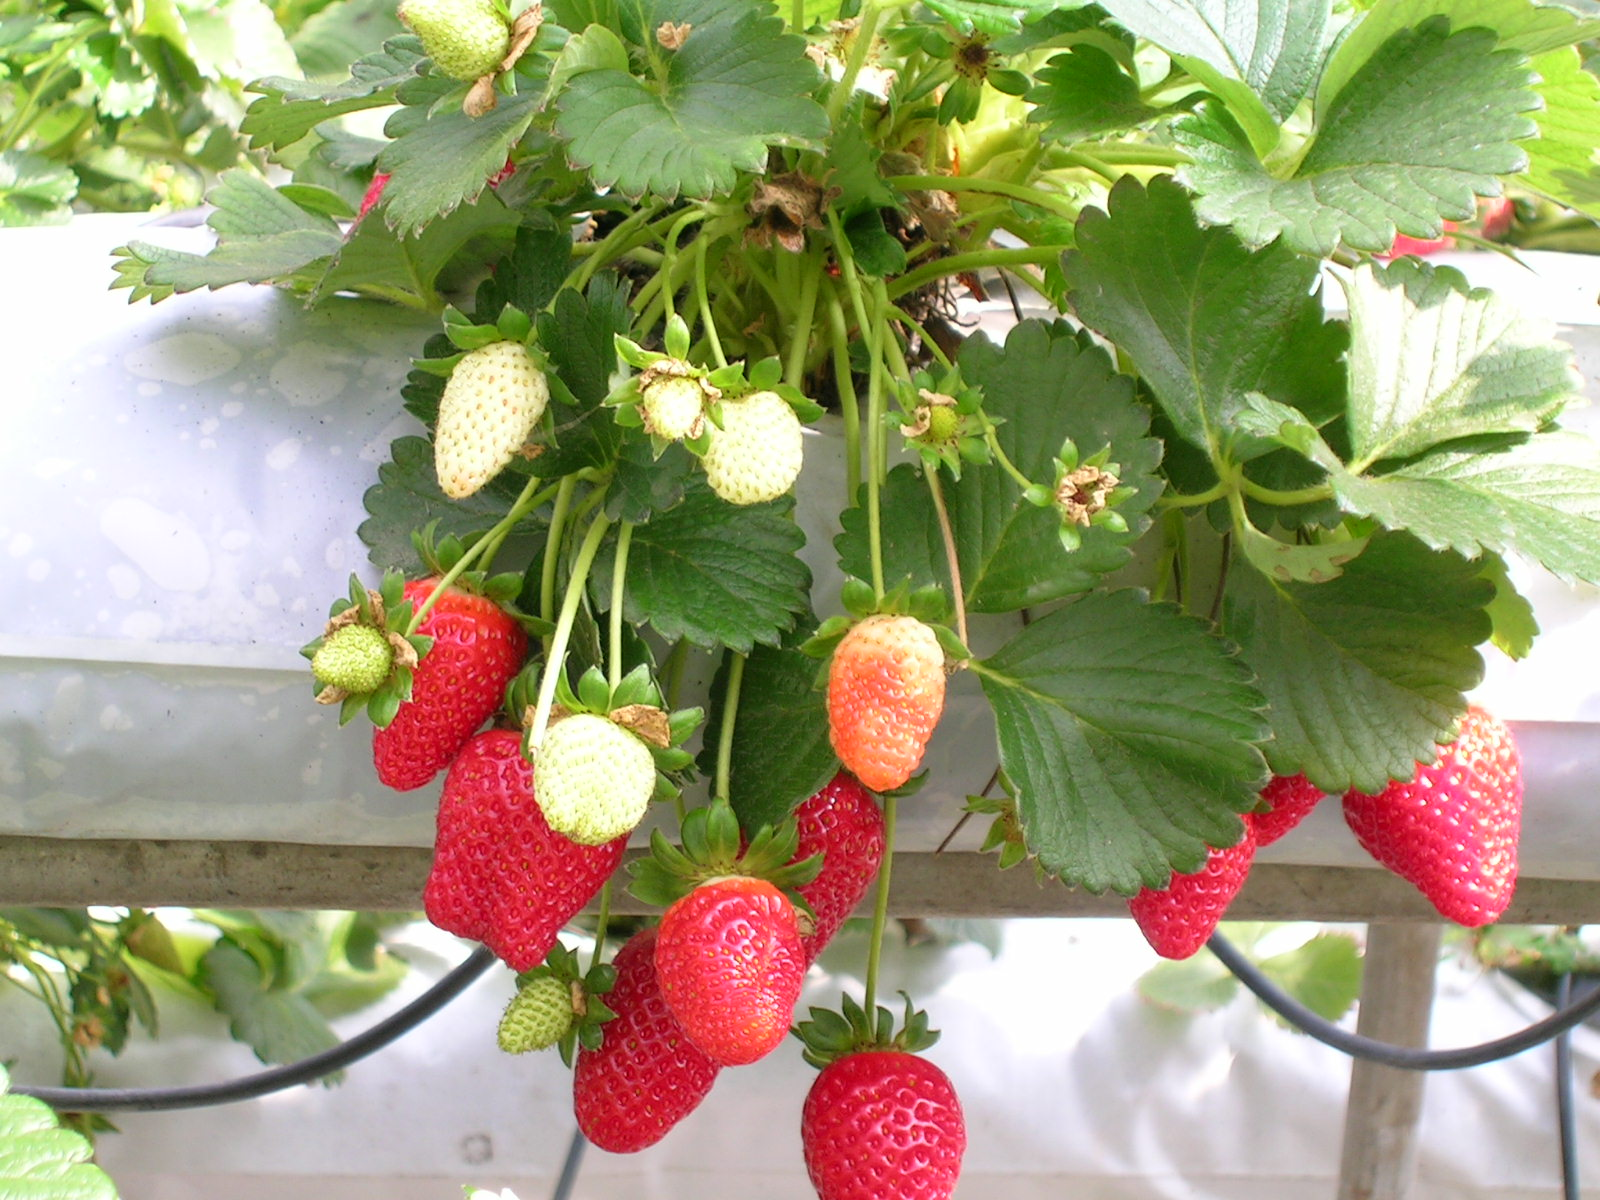 Grow it yourself: Strawberries